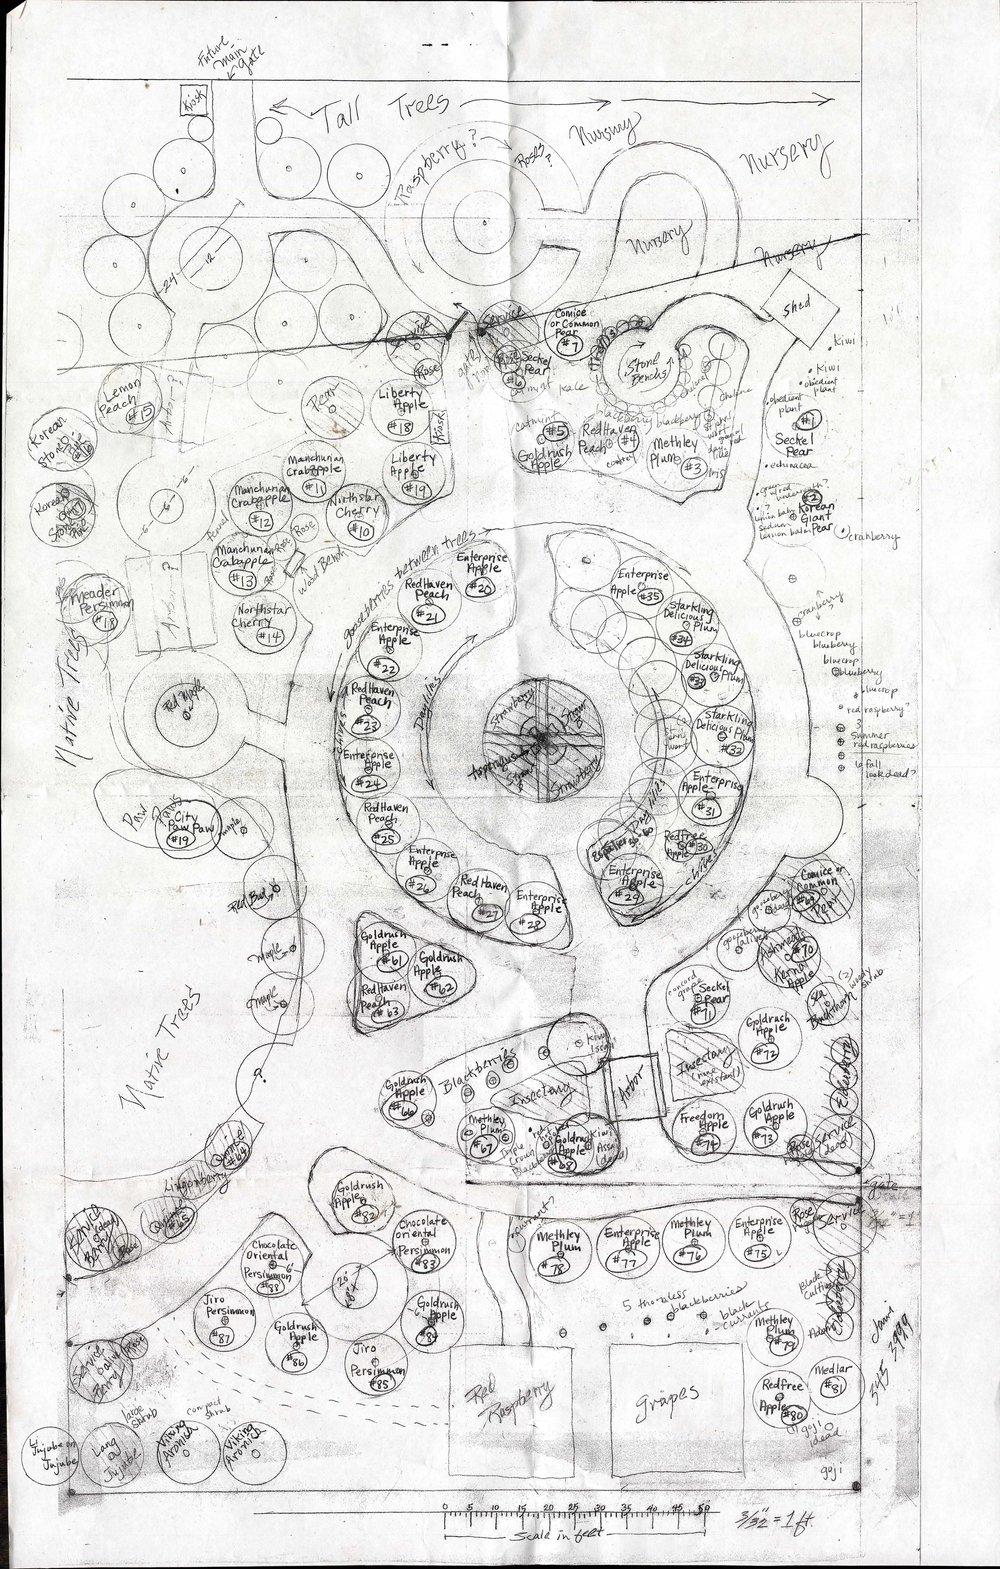 This map, a facsimile on which more edits have been written in pen, adds signifiant depth to Jack's layout. This is the most complex map in BCO's archive, with an aspirational take on plantings that fill the site fully.